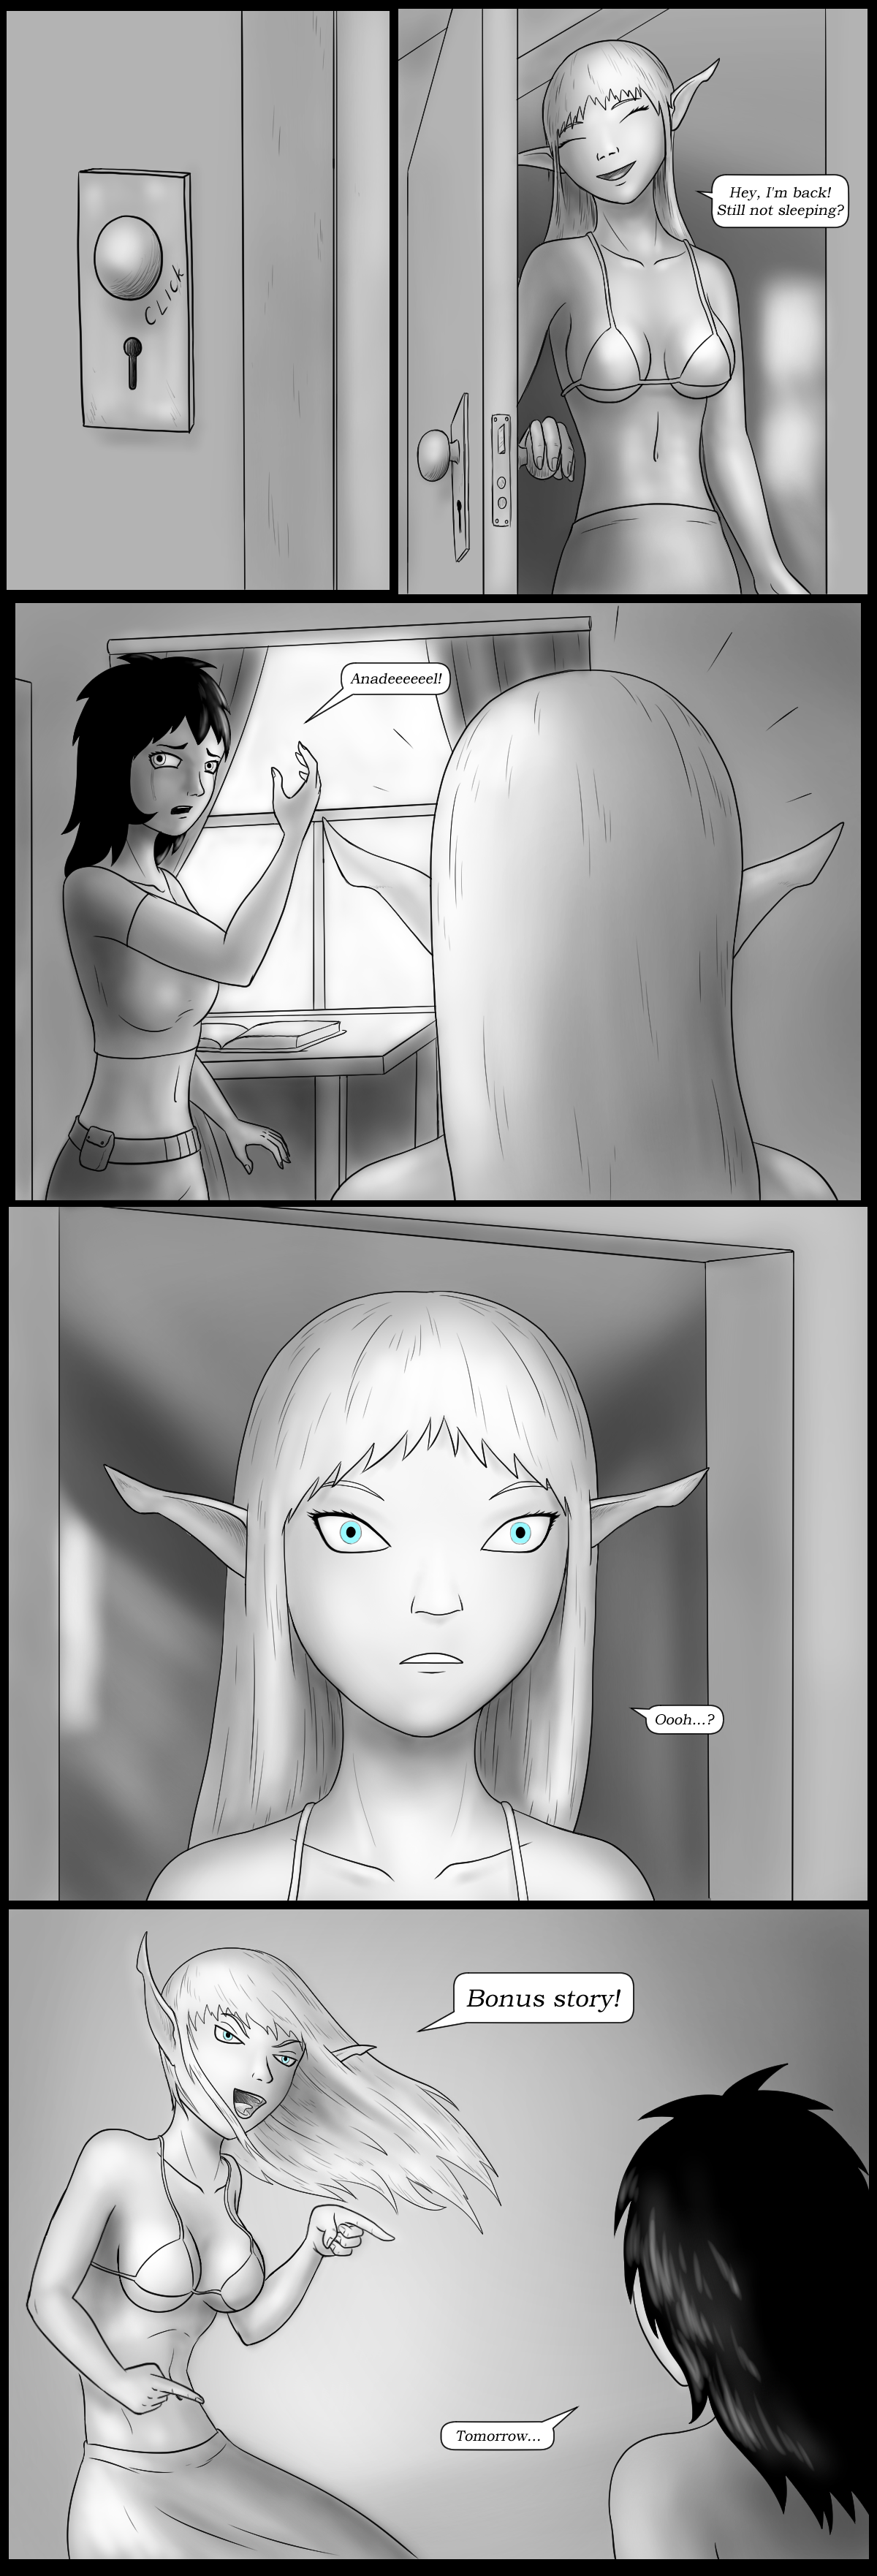 Page 21 - Helplessly confused